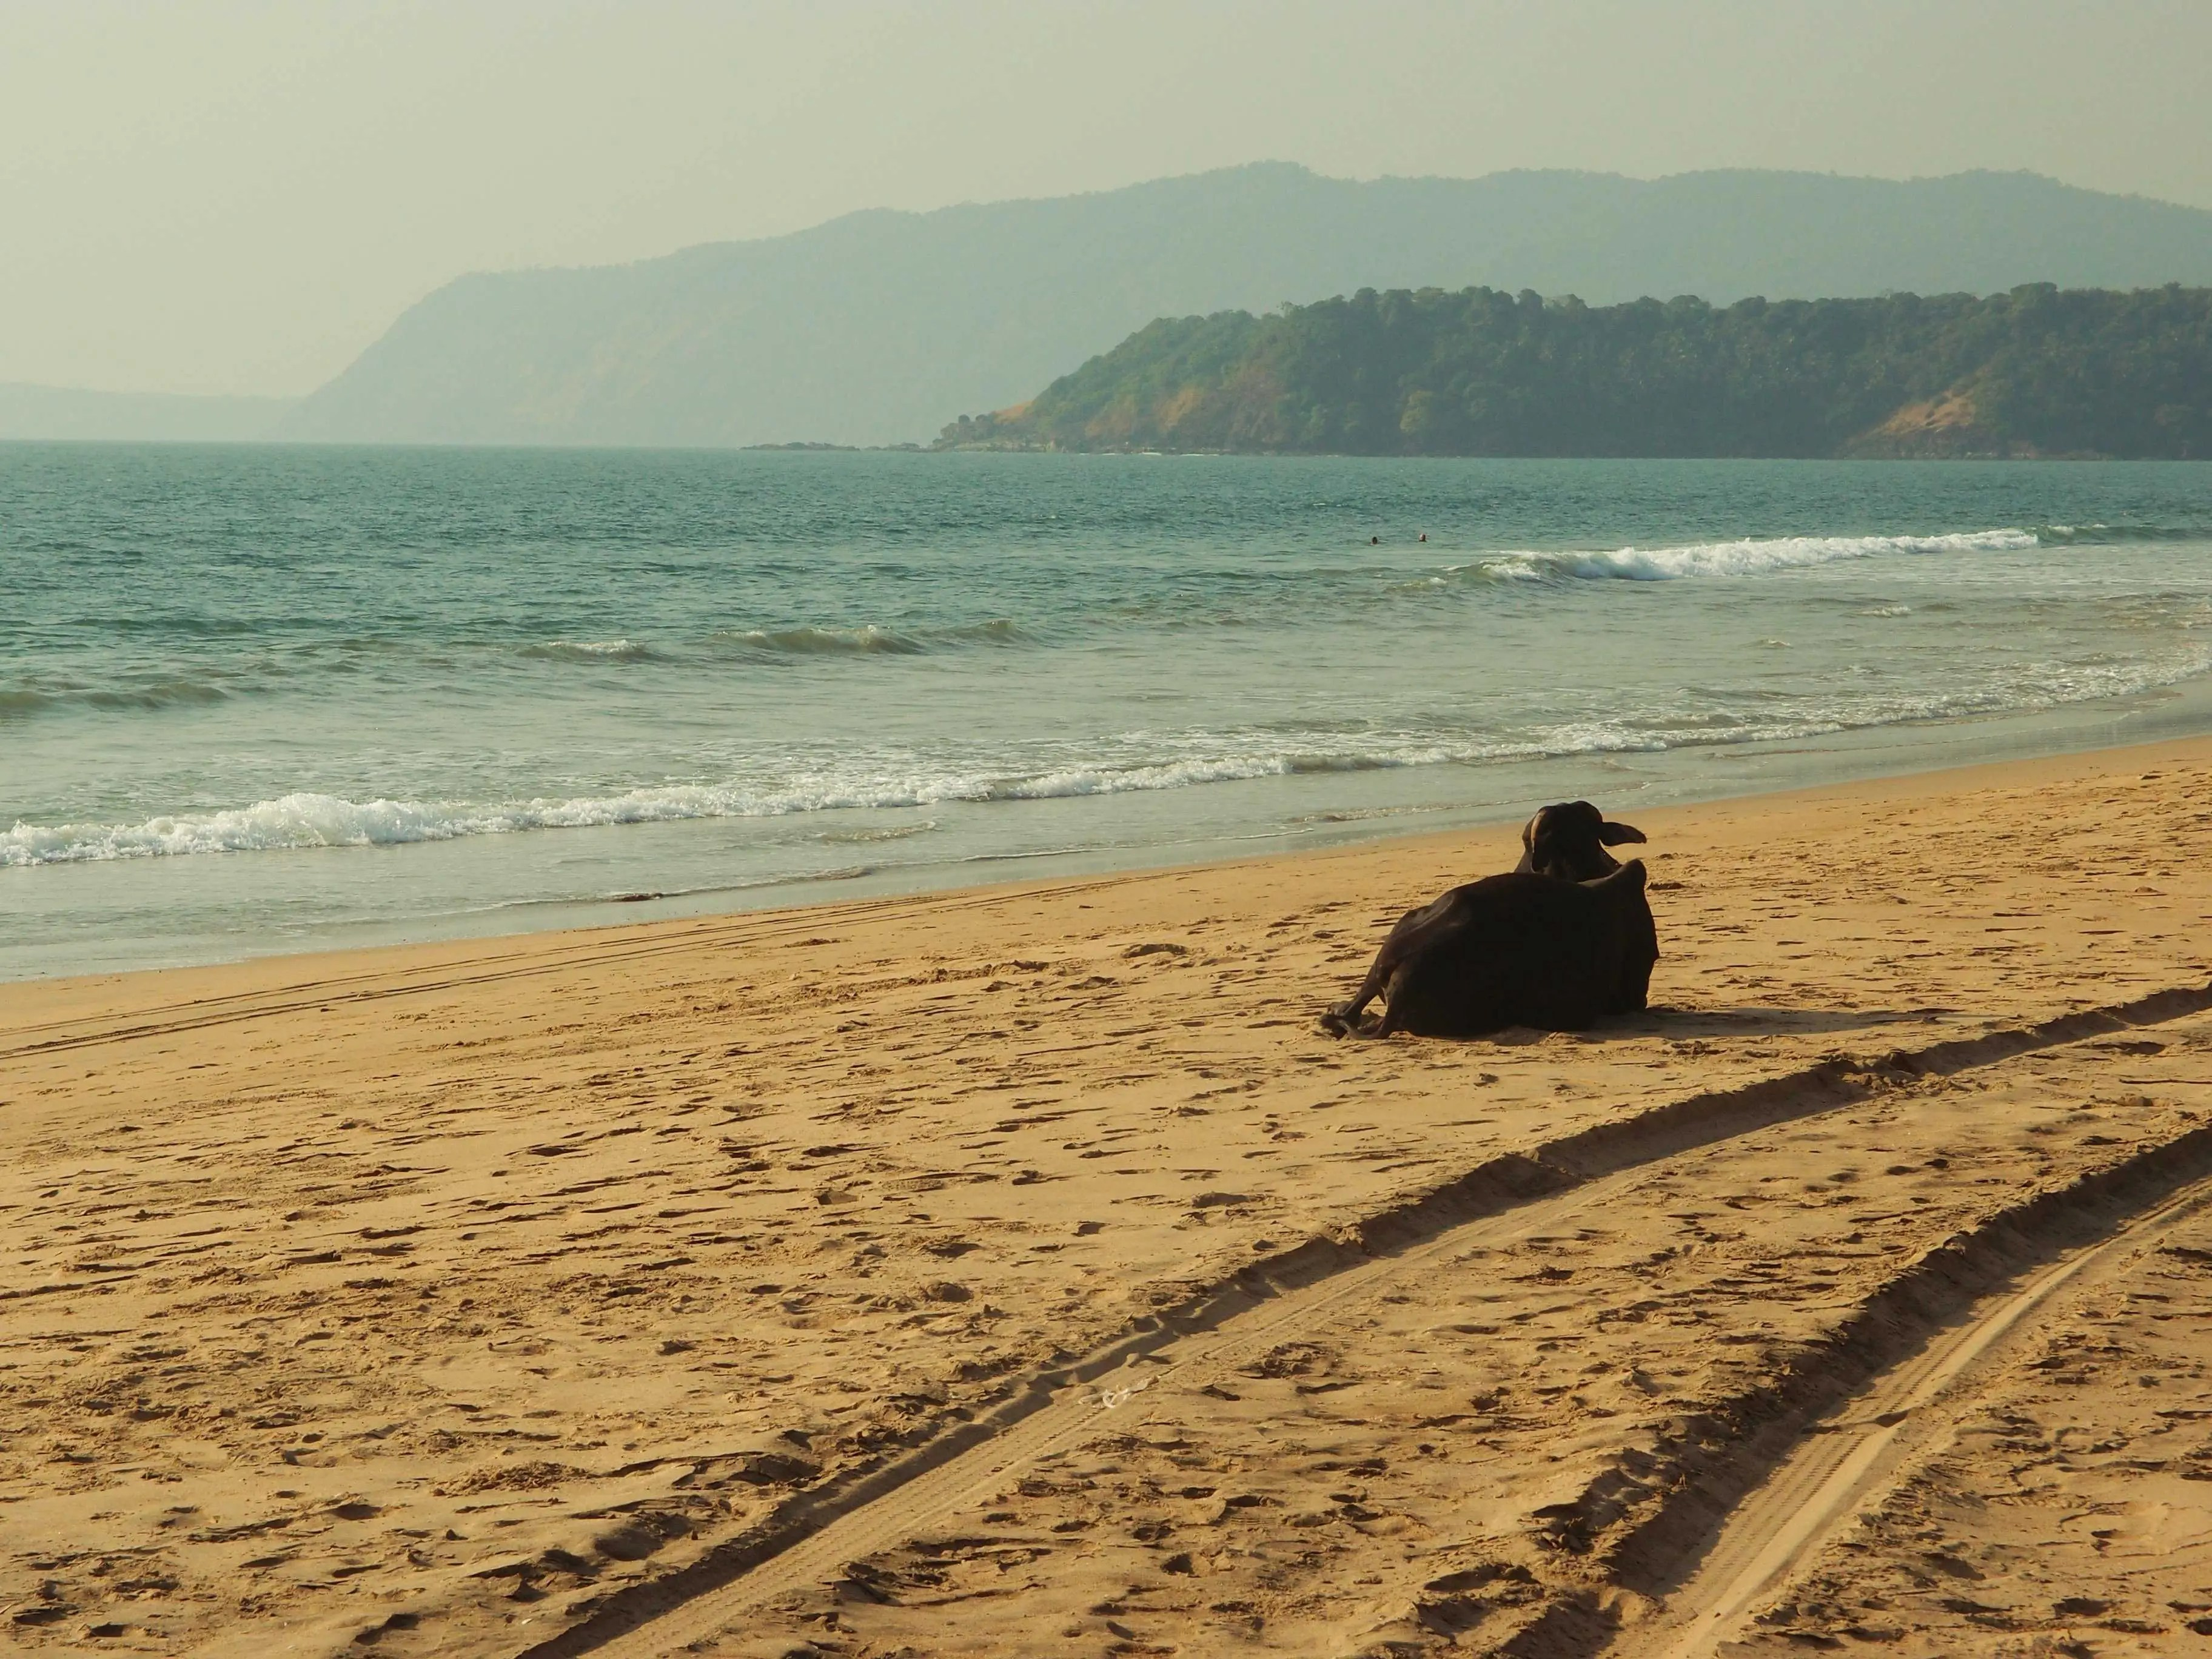 Agonda Beach in Goa, India, has white sands, green mountains, and views of the Arabian Sea.